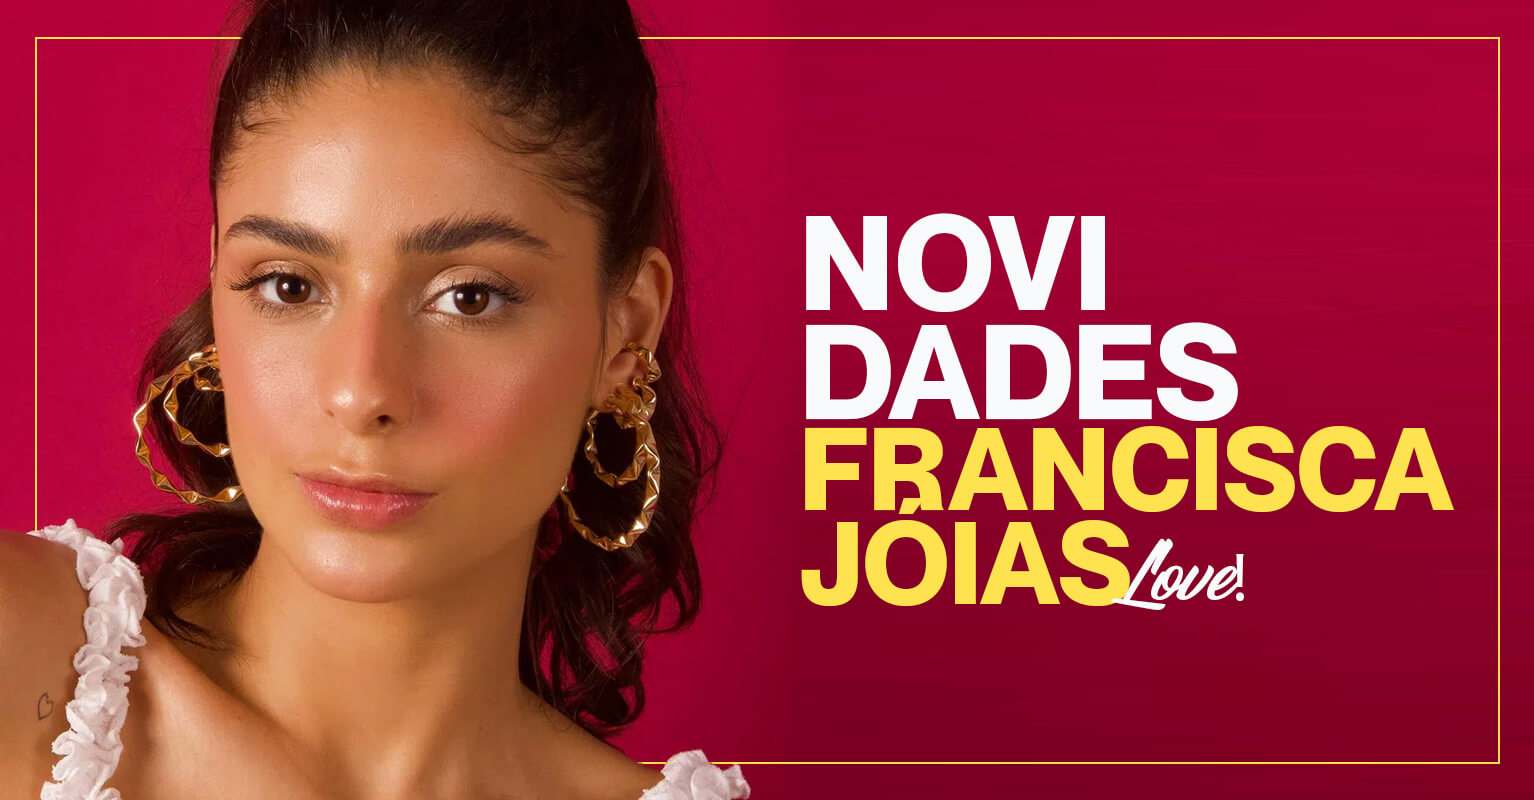 francisca-joias